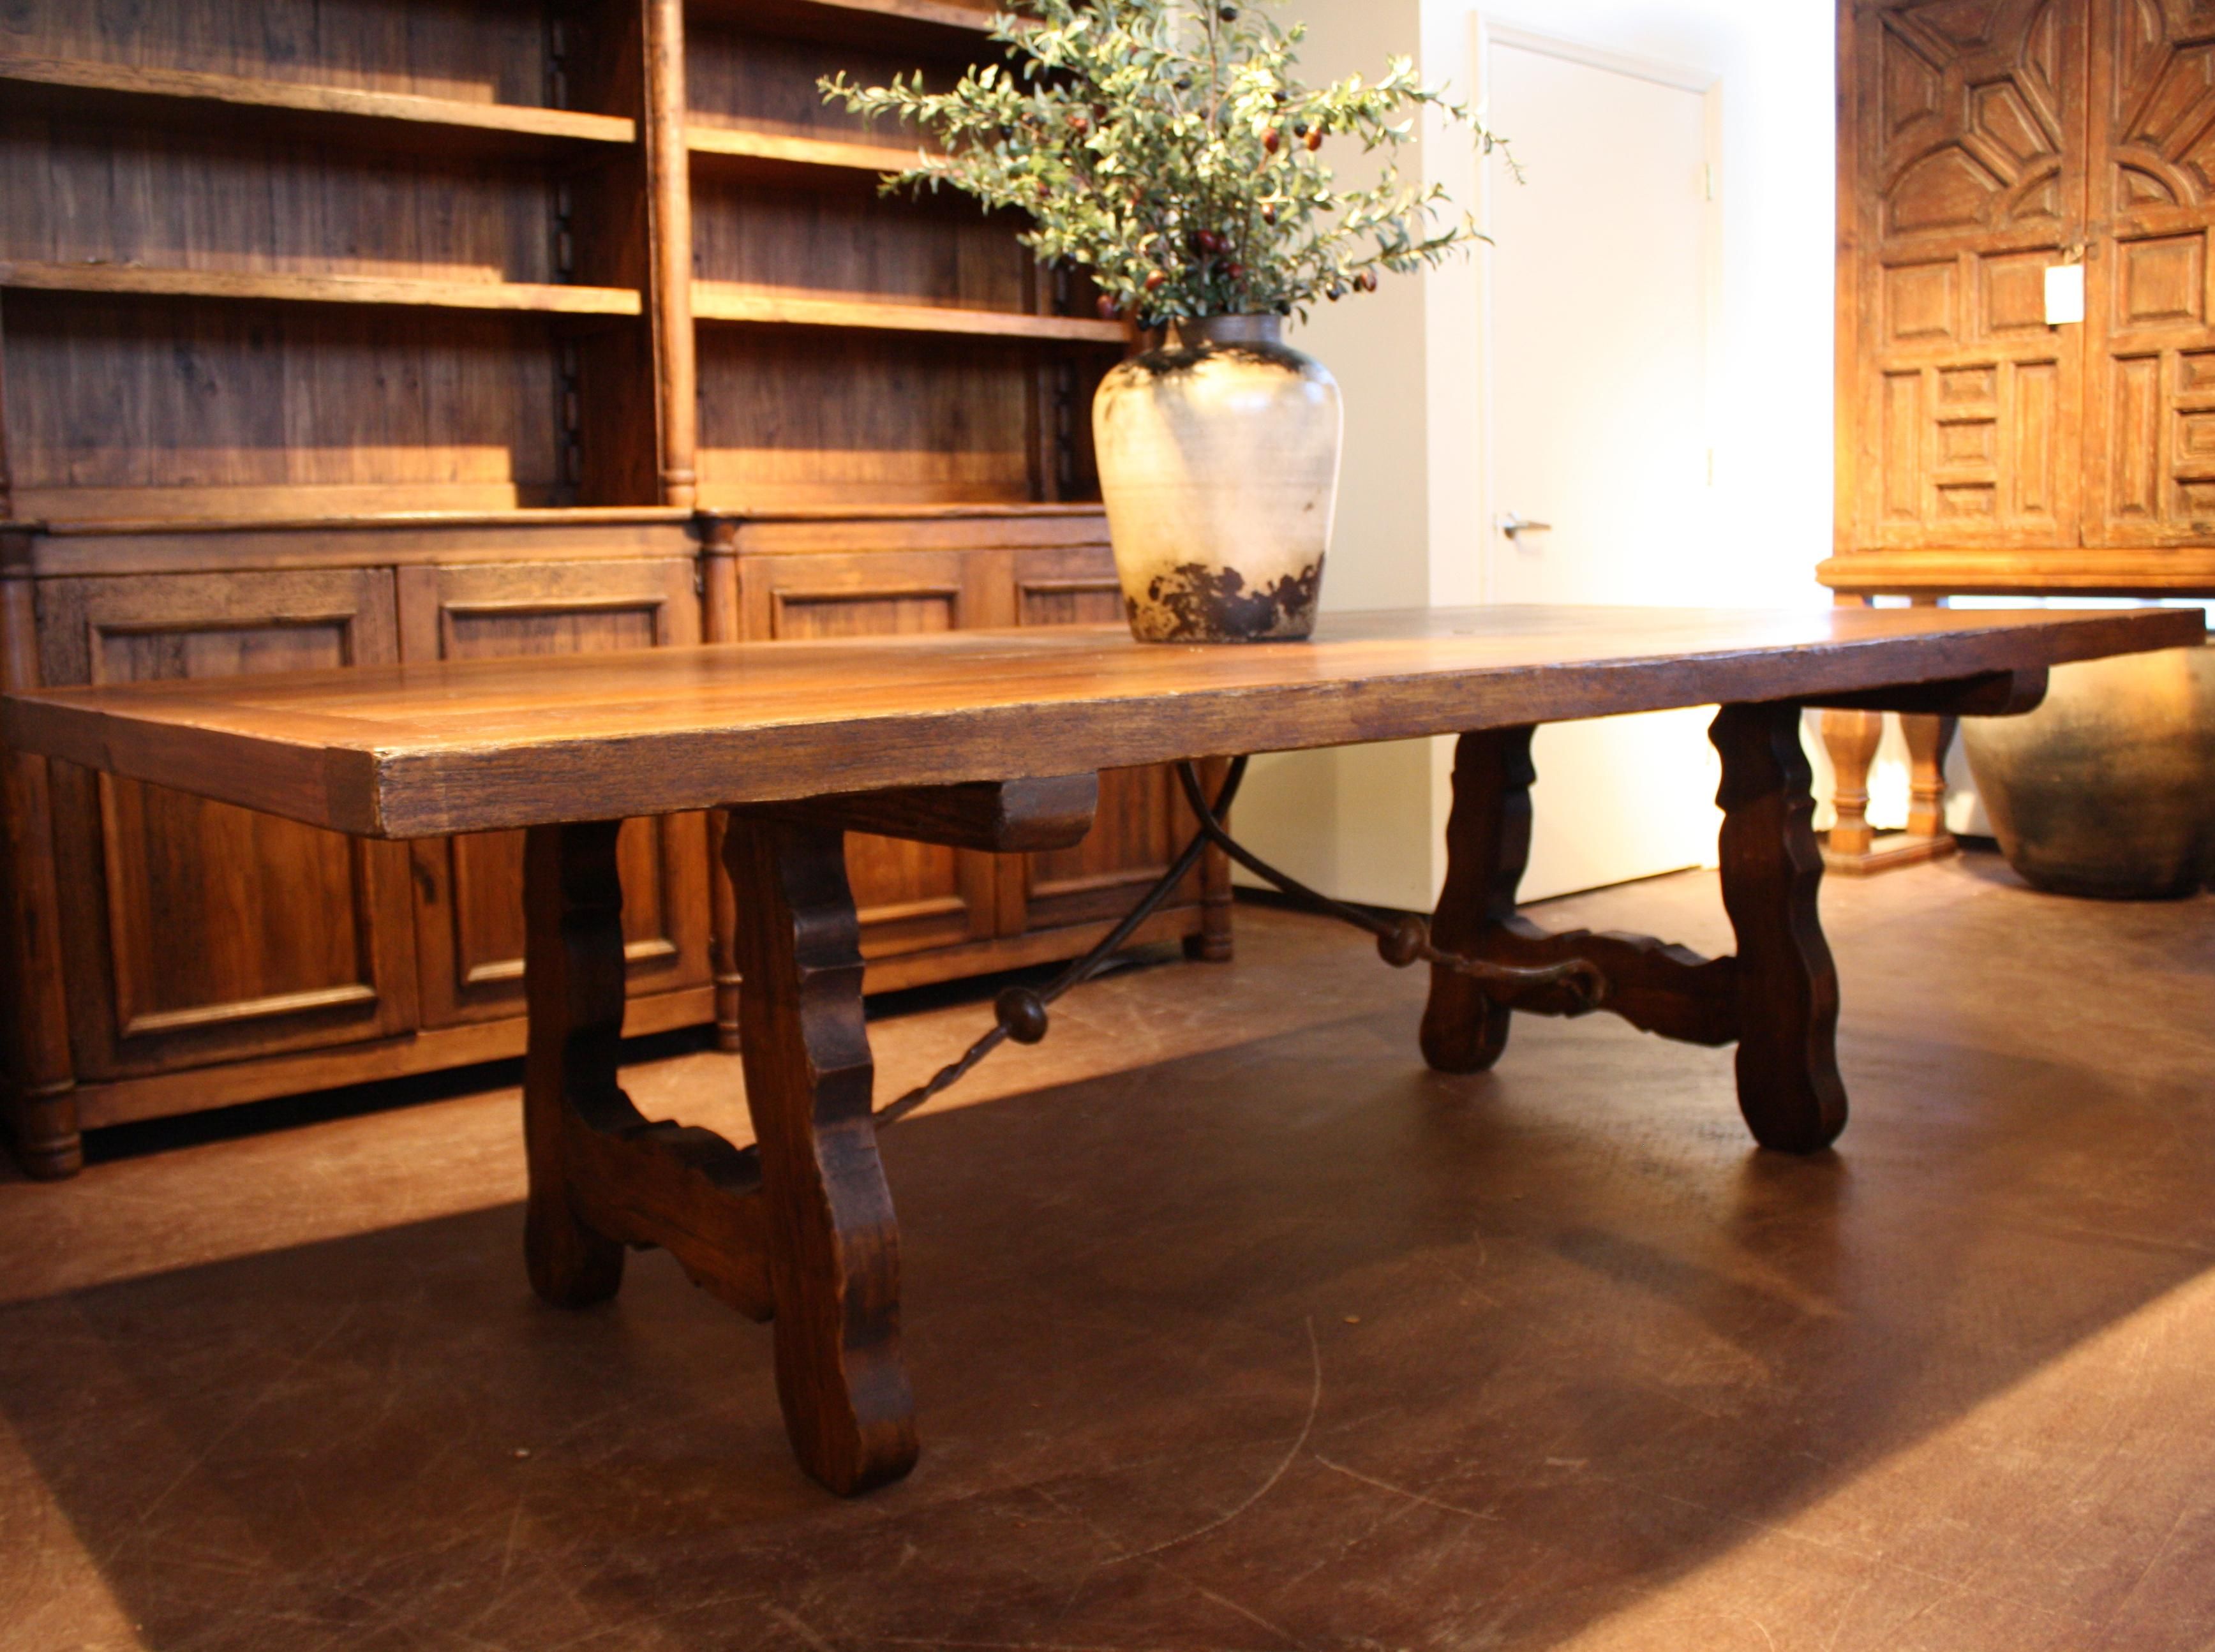 Pastora Dining Table with Iron Work